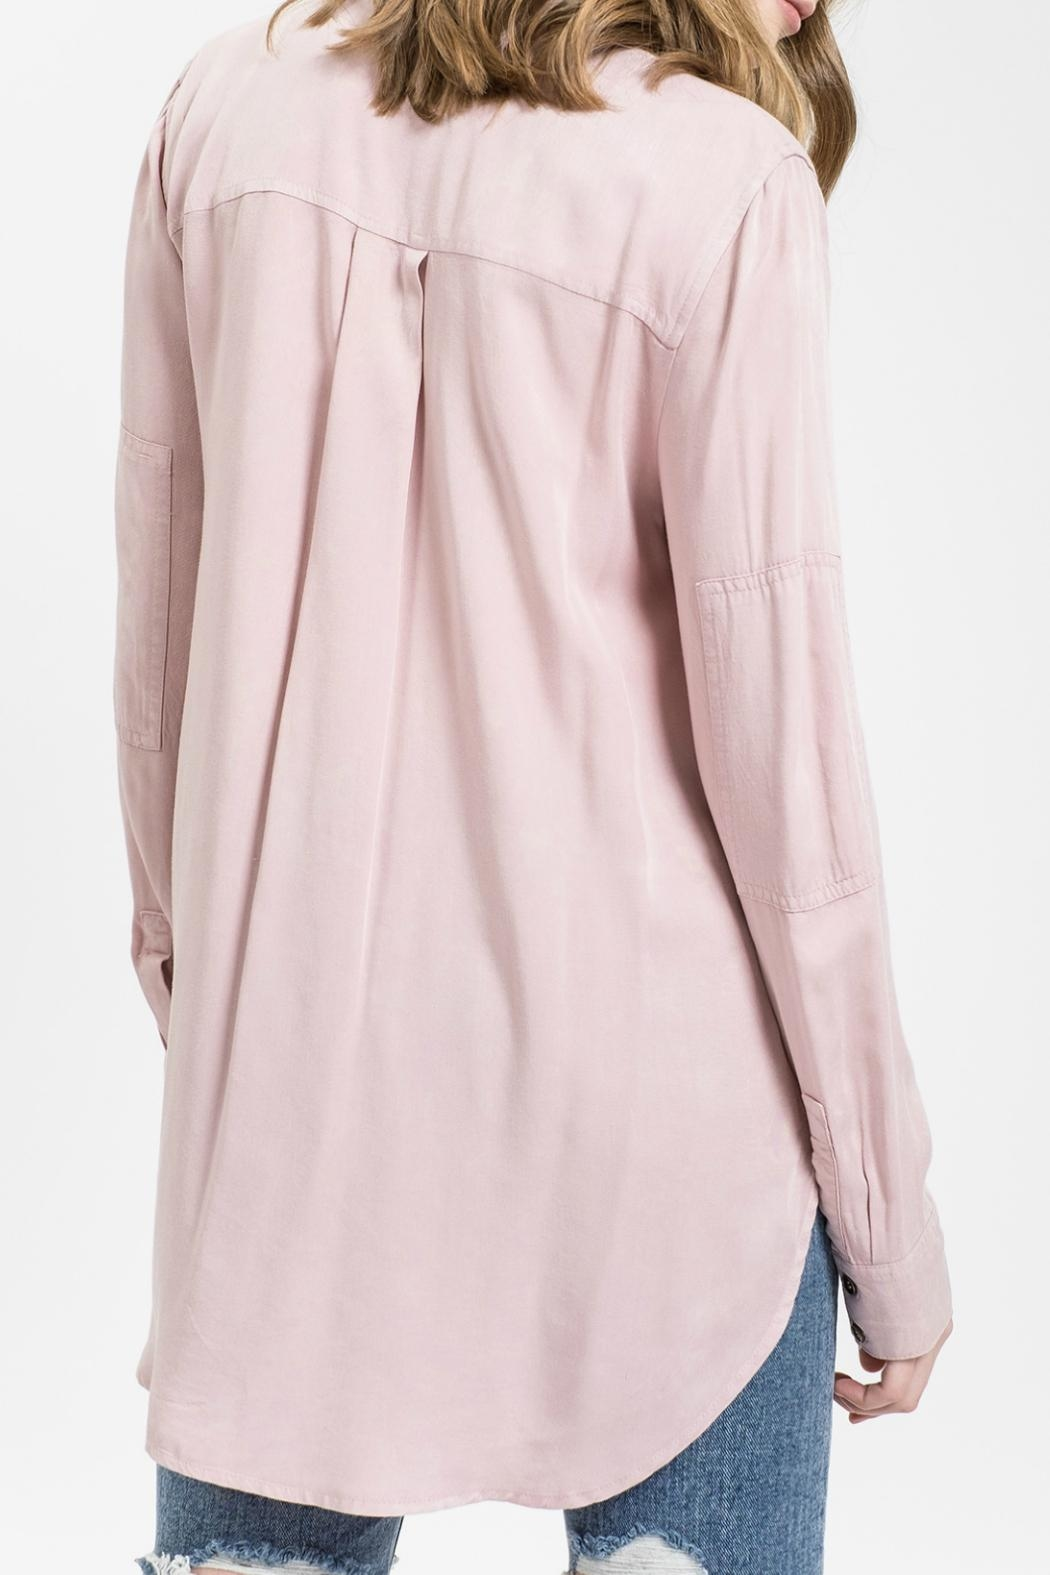 Sweet Wanderer by Blue Pepper Kenni Blush Button Up Top - Front Full Image